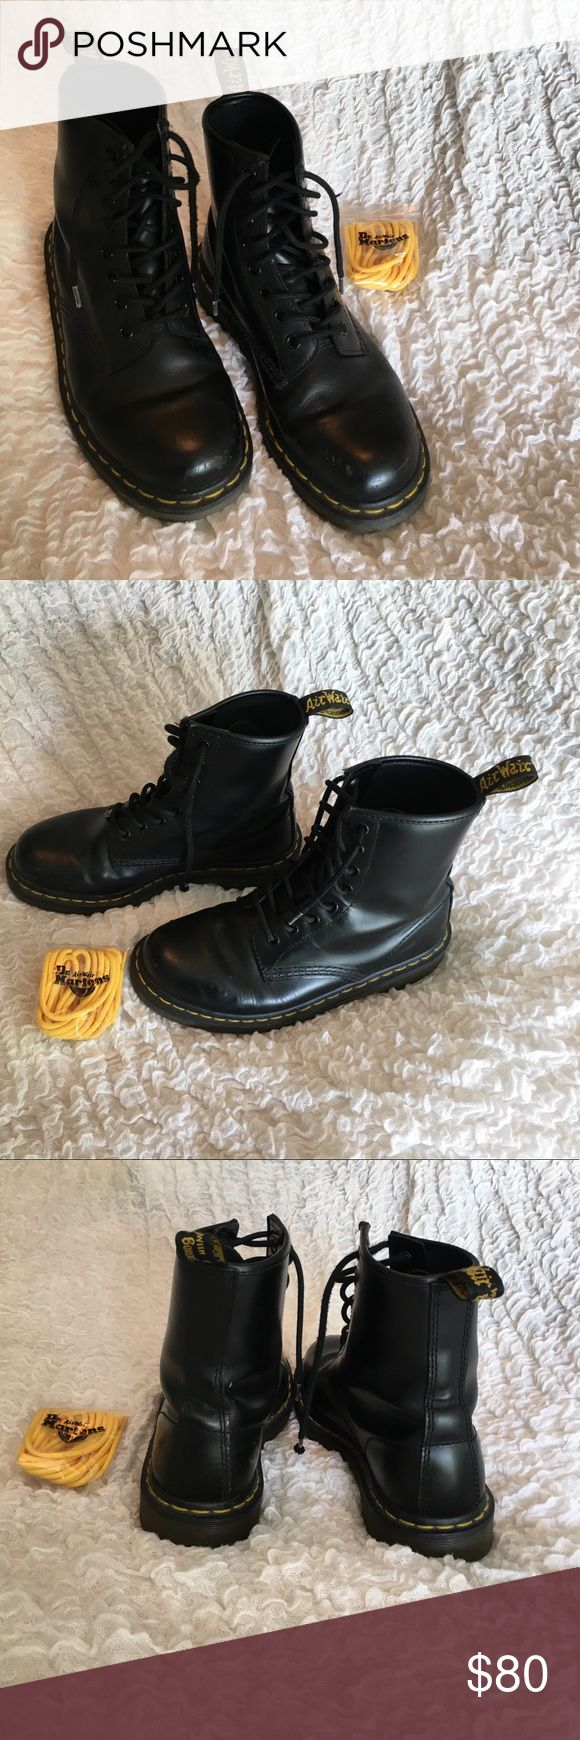 Dr. Marten Air Wear Black Boots Gently worn Dr. Marten Air wear black lace up boots. Never used yellow original laces are included as well. Dr. Martens Shoes Combat & Moto Boots